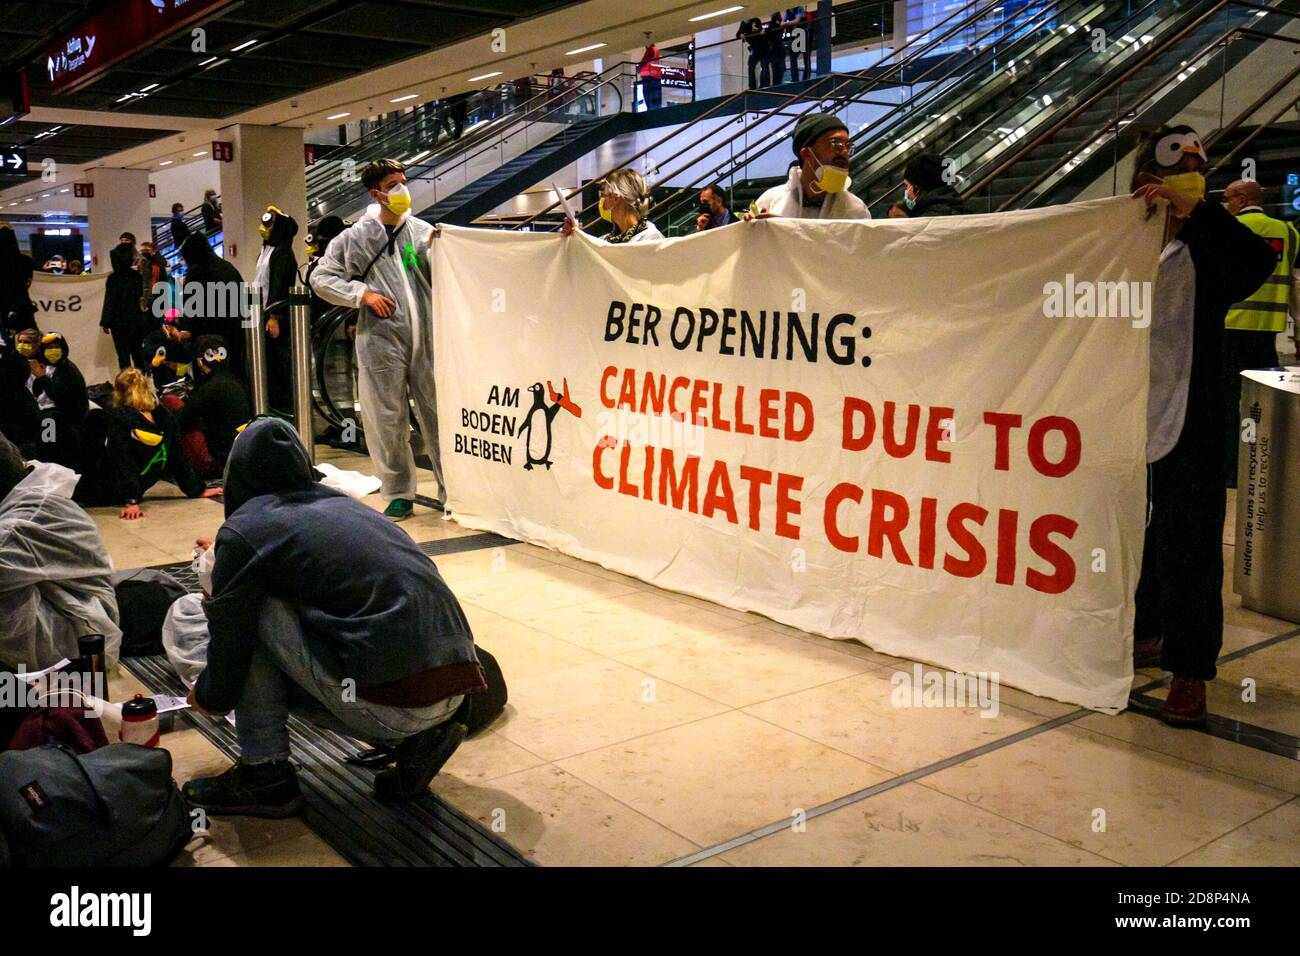 """Climate activists hold """"BER opening: cancelled due to climate crisis"""" sign to protest the opening of Berlin Brandenburg International Airport (BER). Stock Photo"""